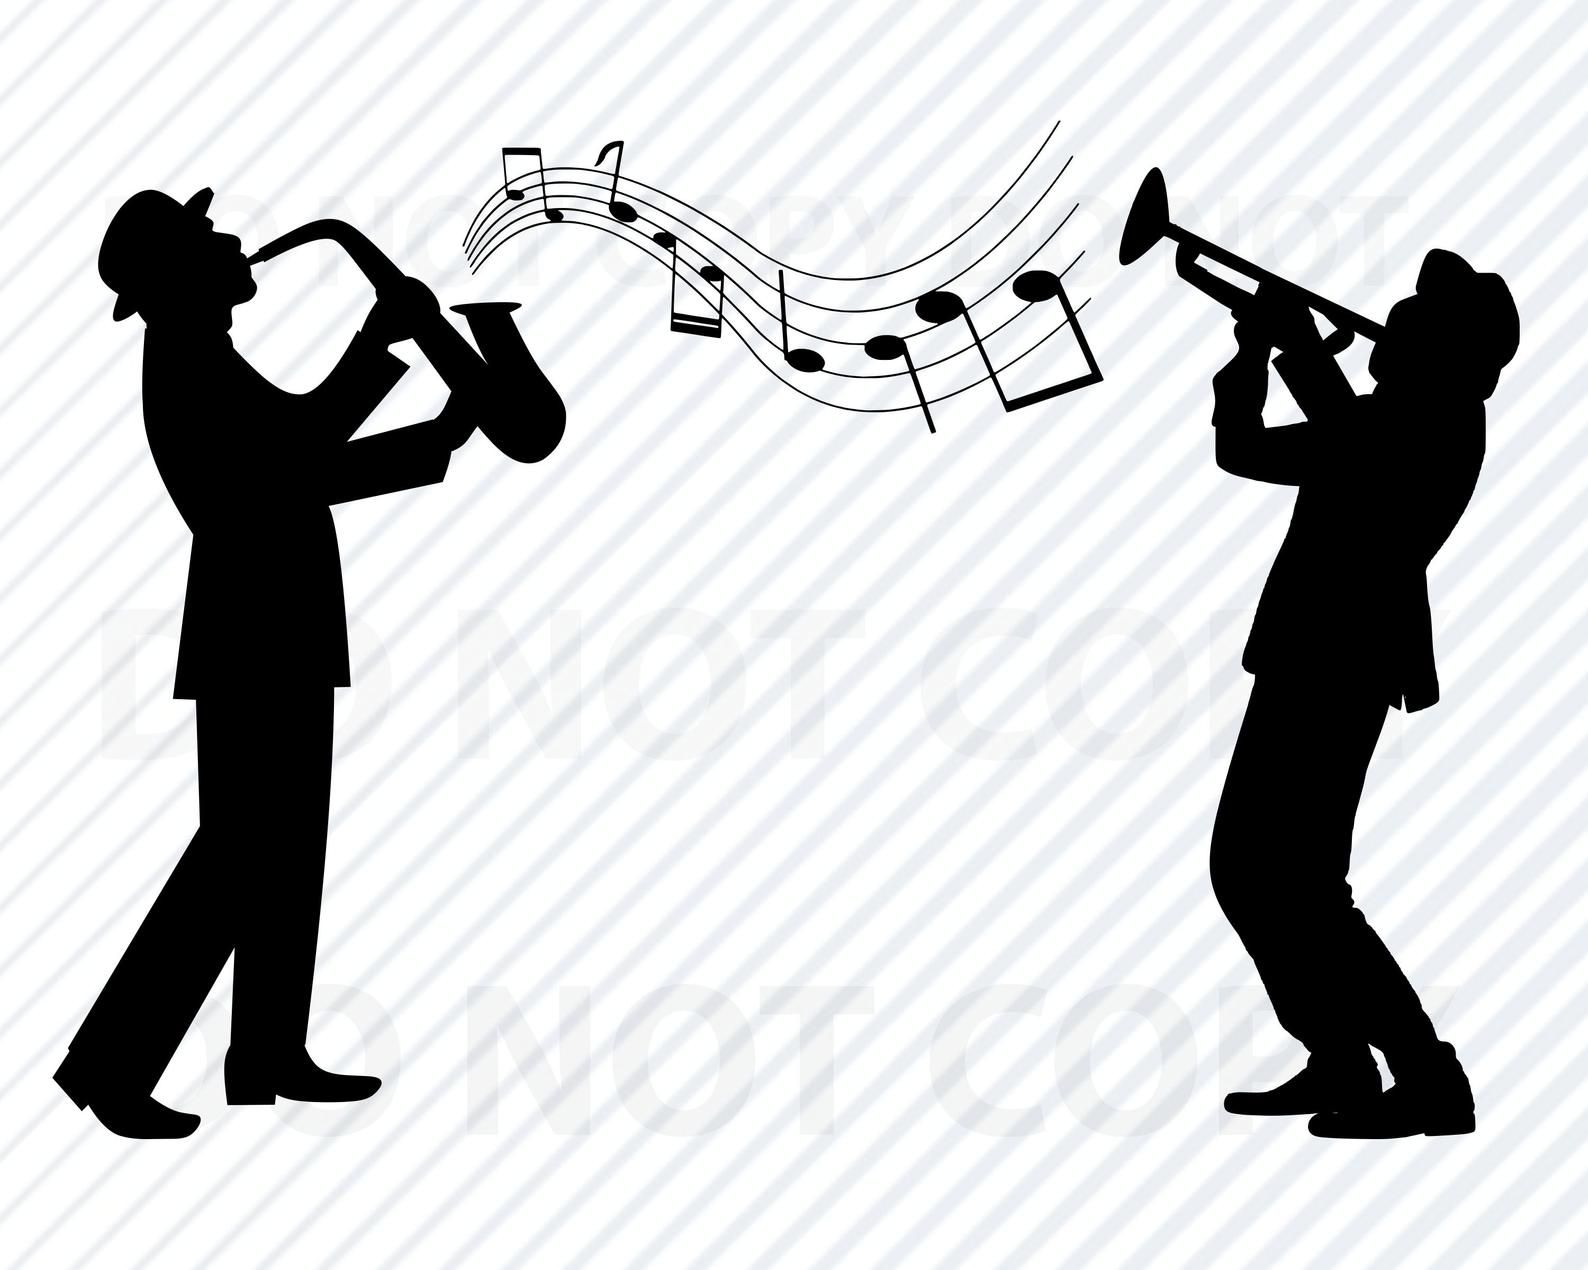 Jazz Band Svg Files For Cricut Silhouette Clipart Saxophone Svg Image Musical Notes Svg Eps Saxophone Png Dxf Clip Art Jazzpng Jazz Saxophone Jazz Band